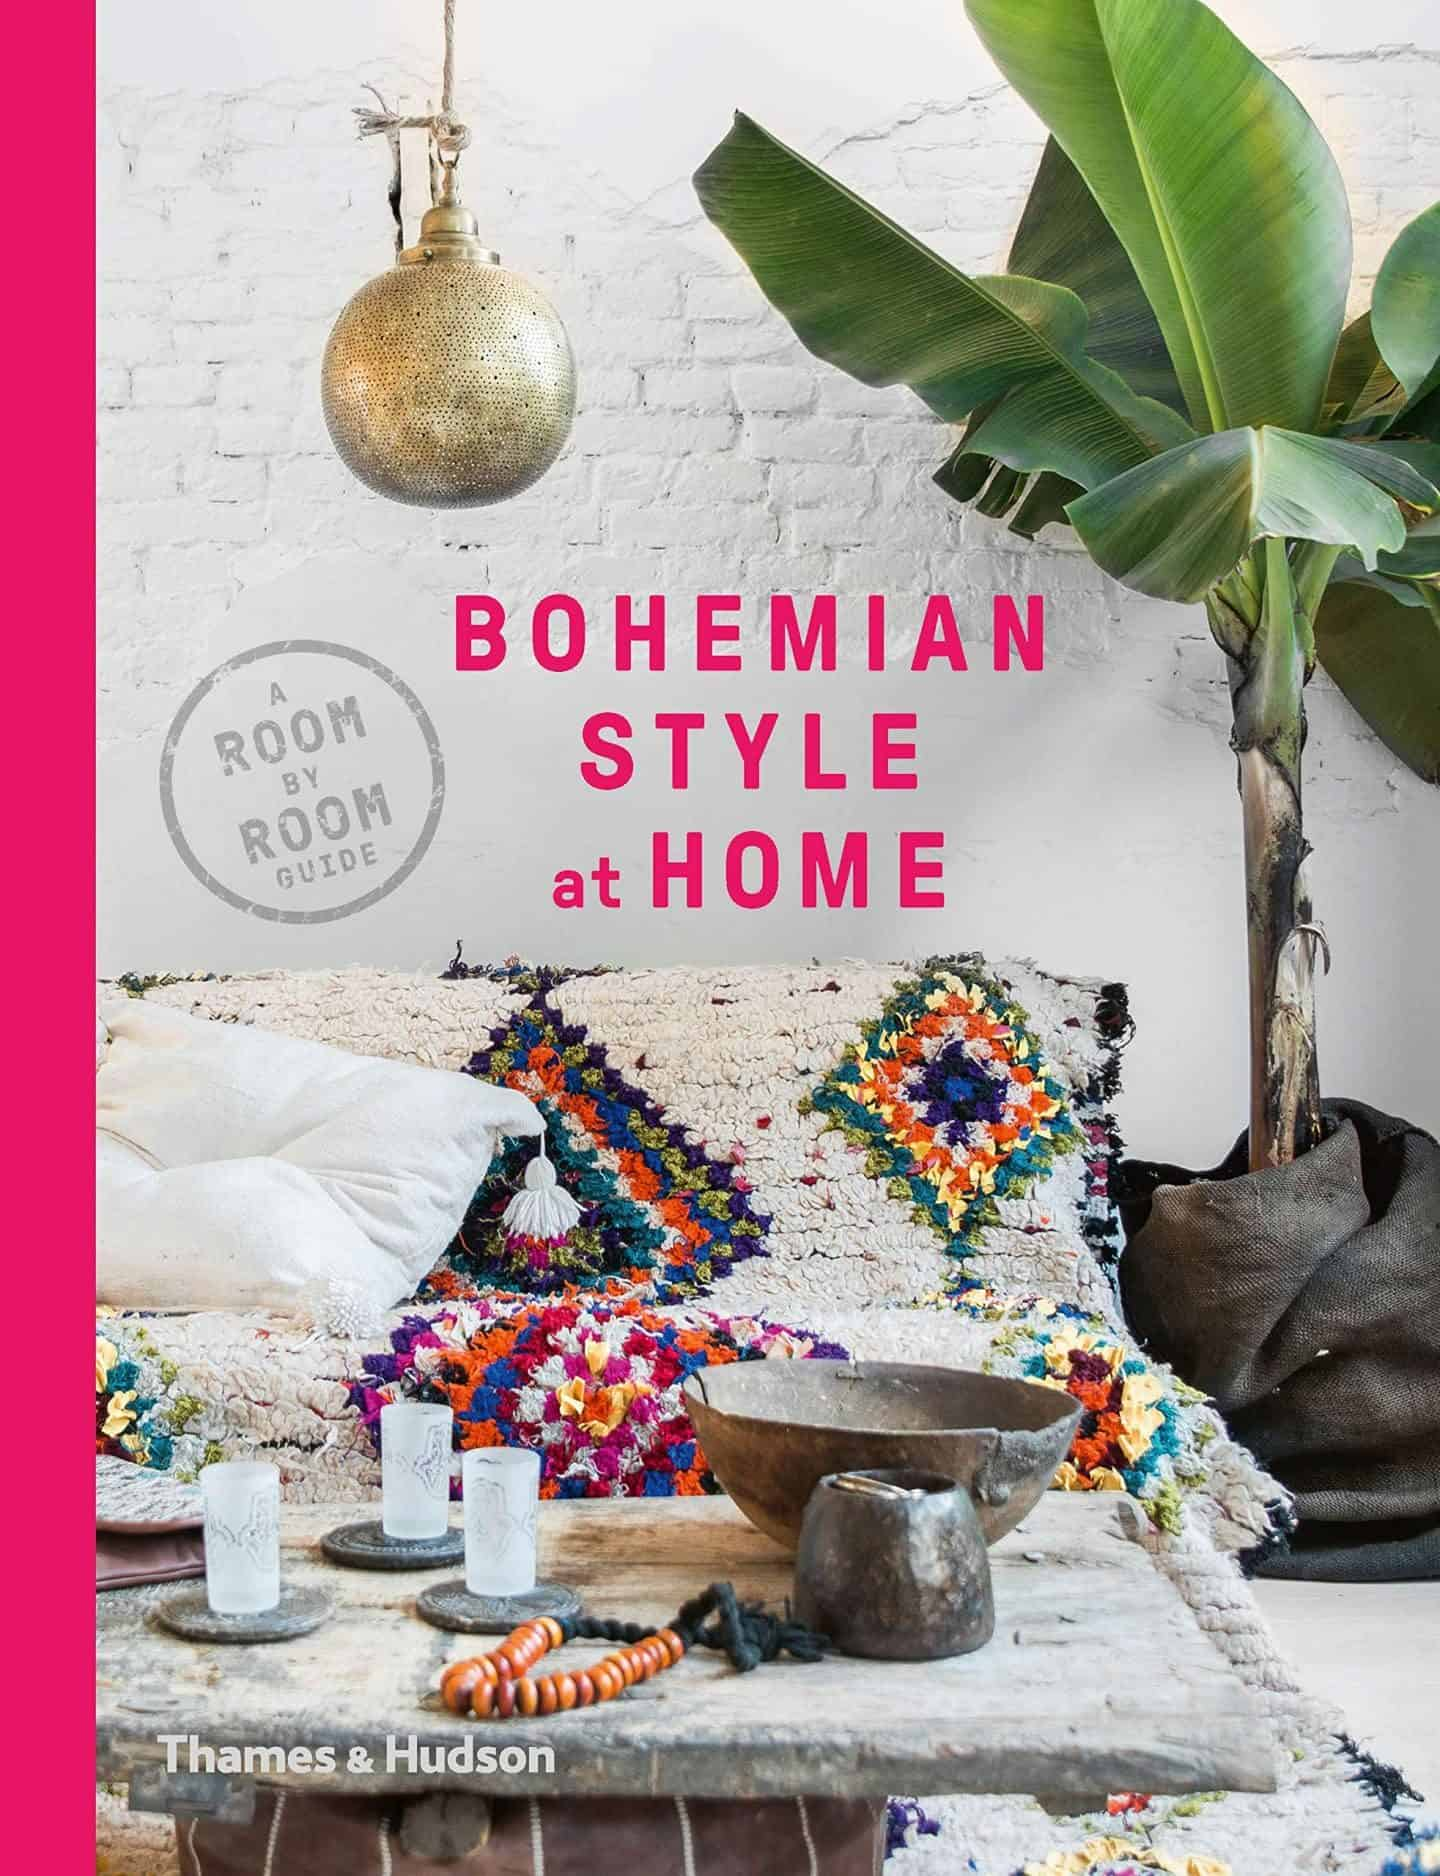 The book cover of Bohemian style at home by Kate Young